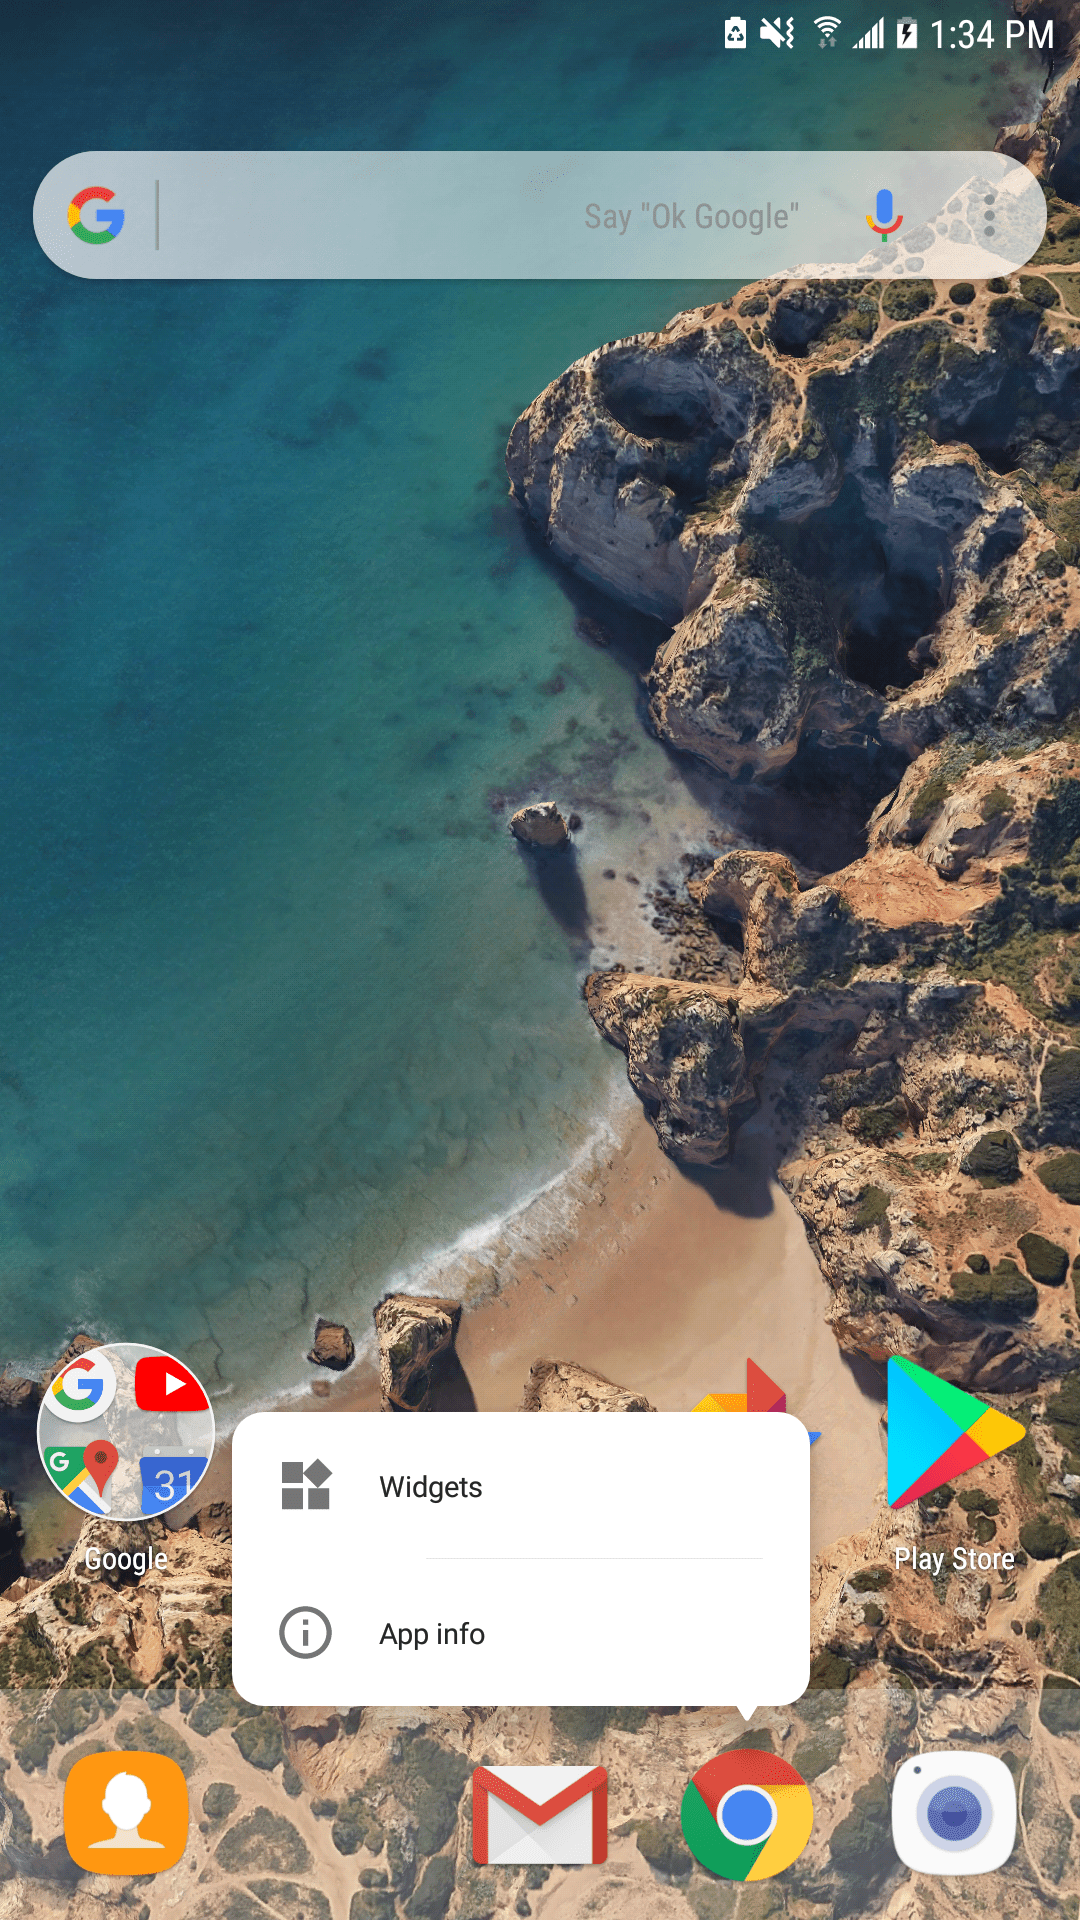 Download Xiaomi Mi A1 Launcher APK - Android One Launcher